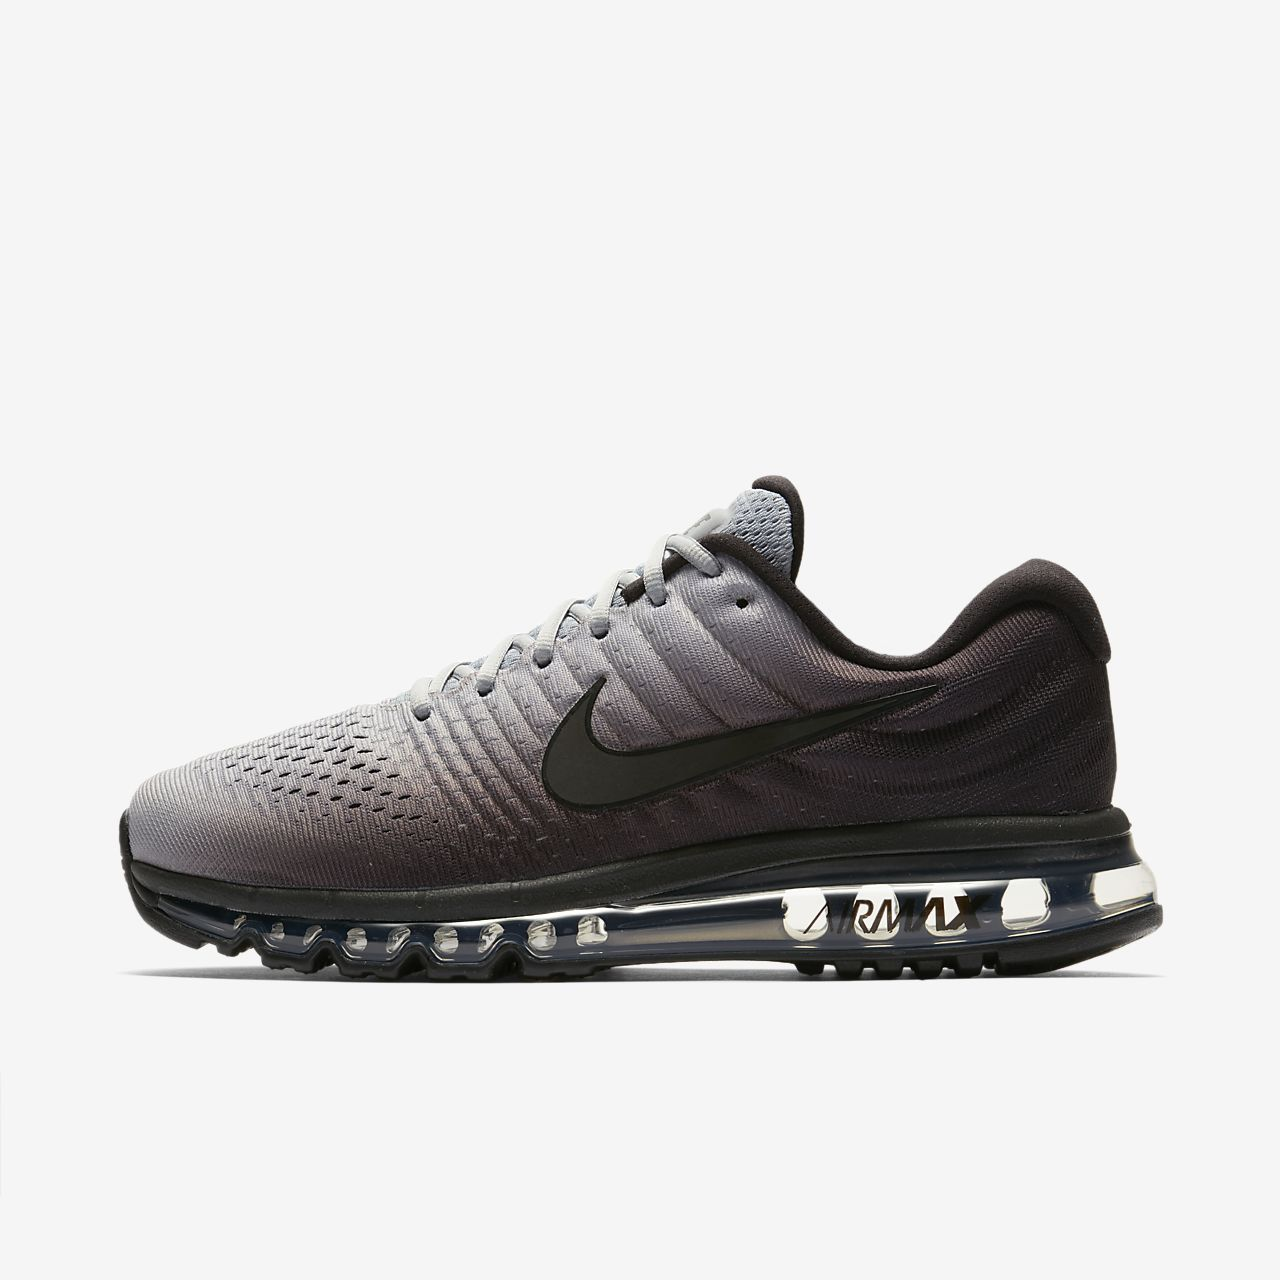 nike air max 2017 donkerblauw heren